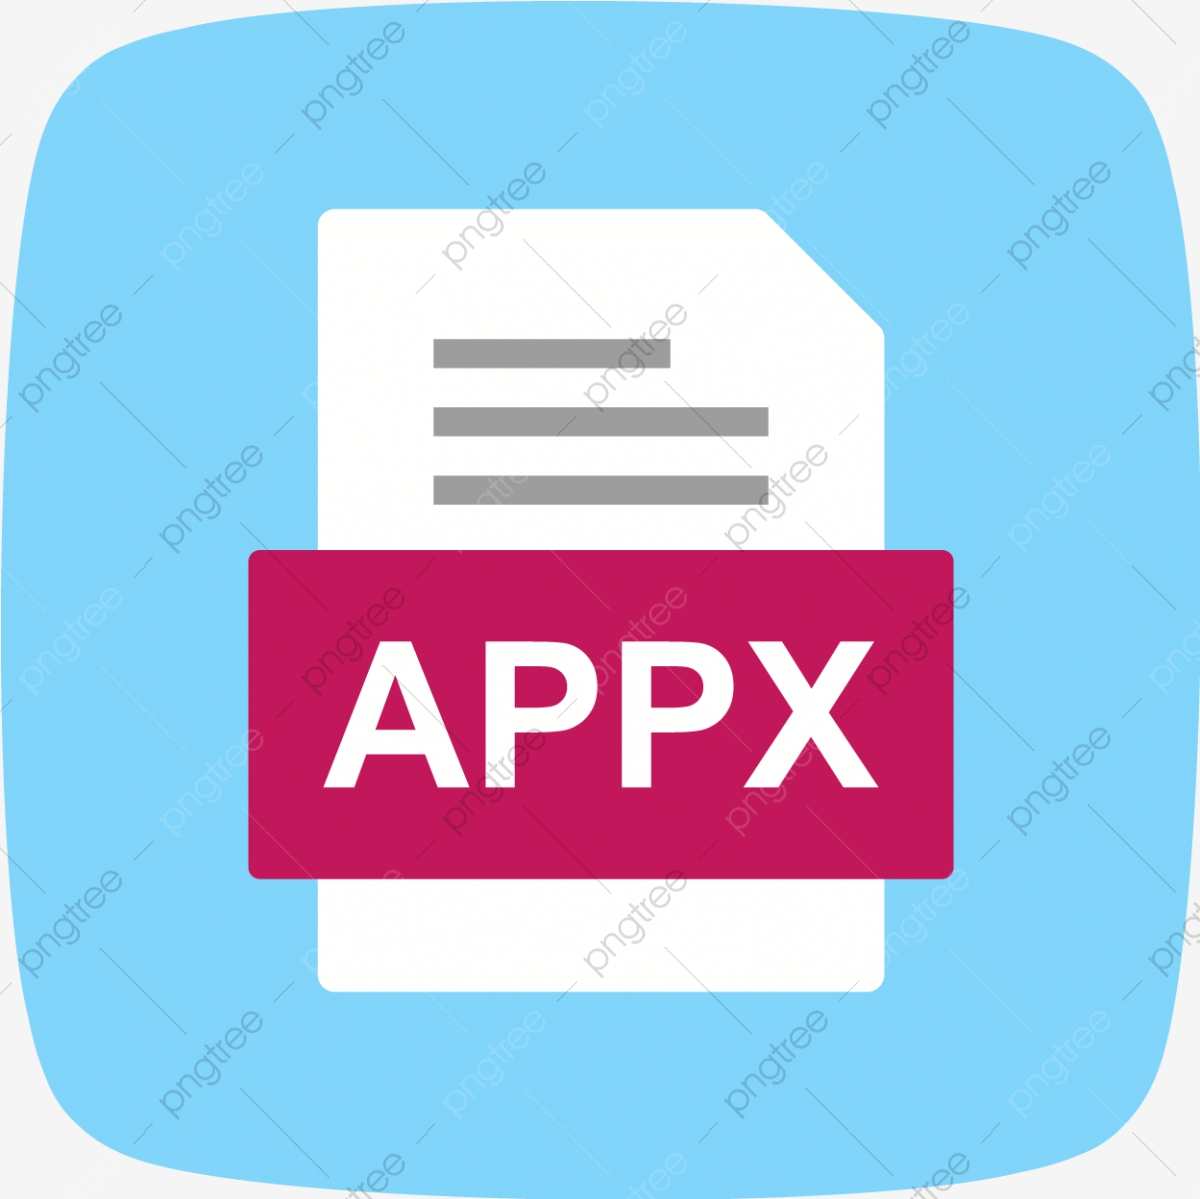 Appx File Document Icon, Appx, Document, File PNG and Vector